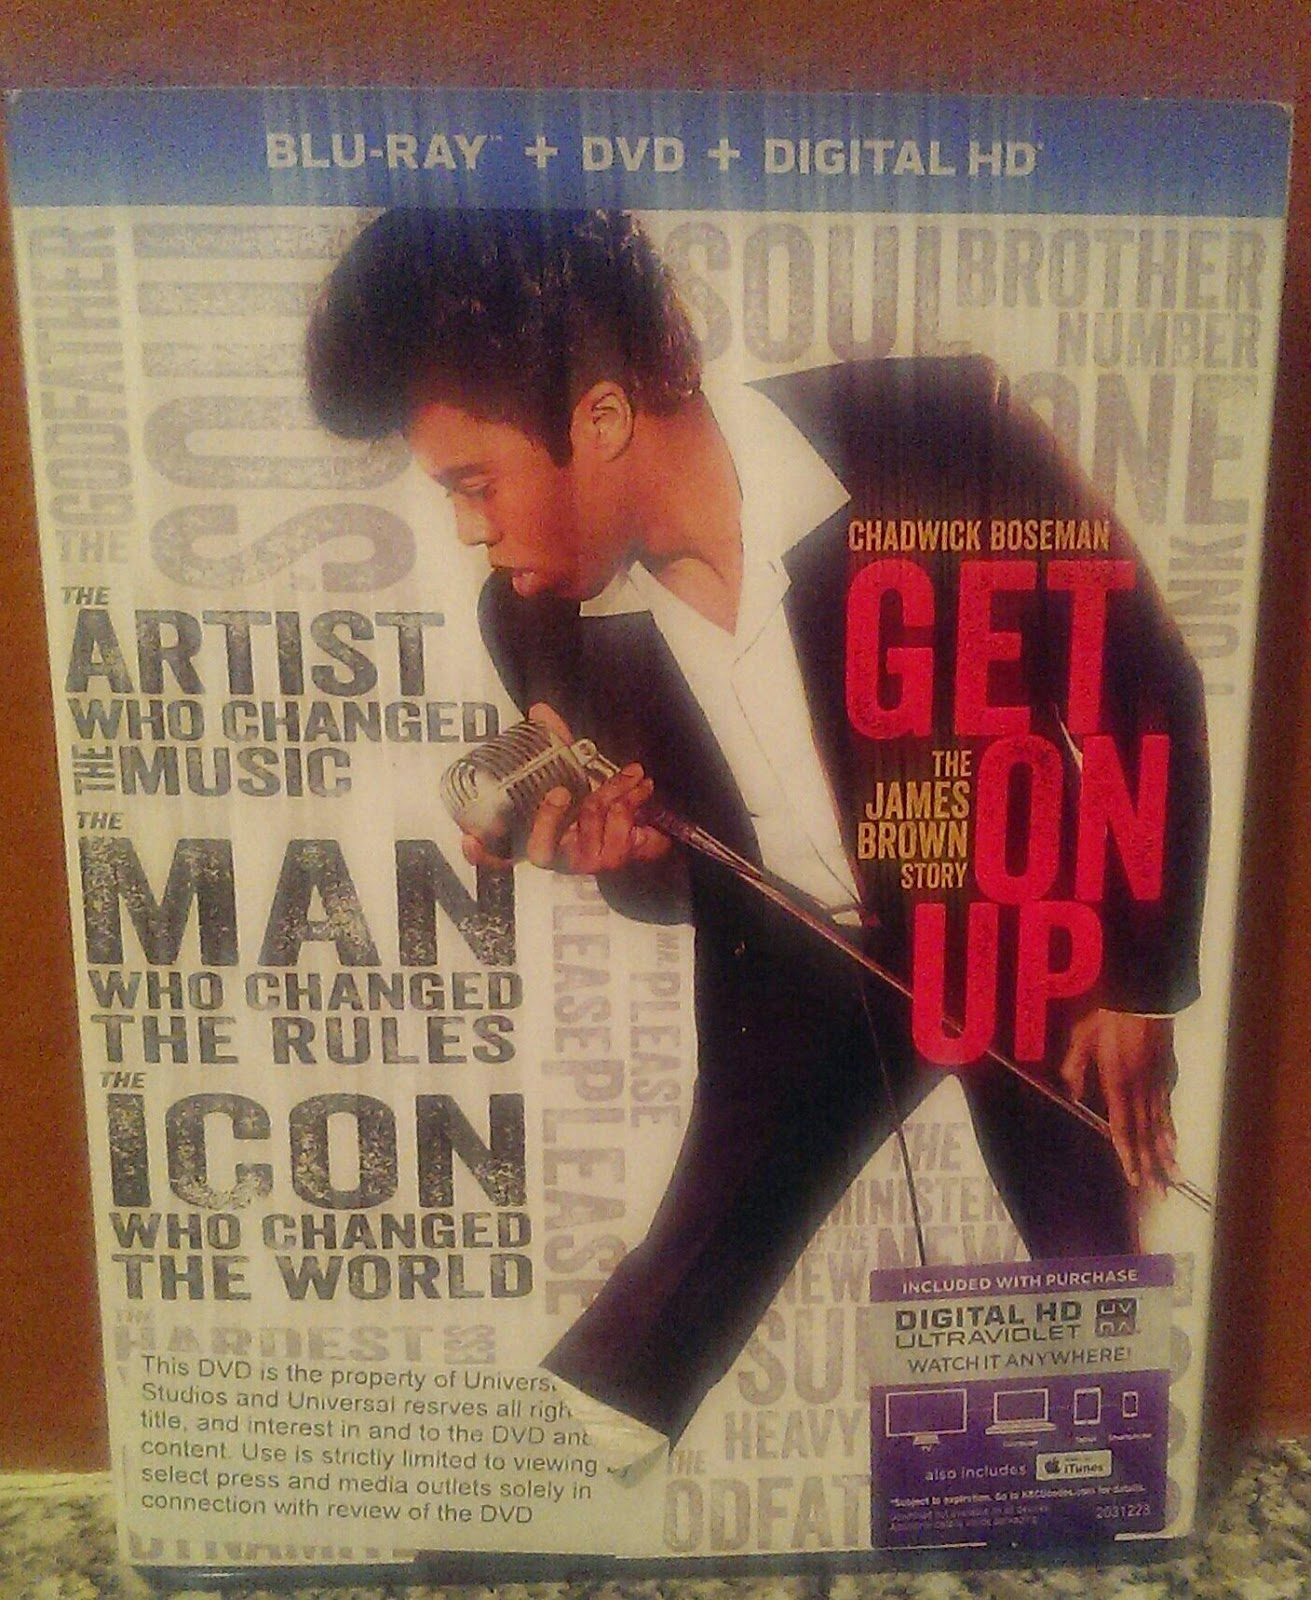 Get%2BOn%2Bup Get On Up is Available On Digital HD and Blu-Ray Combo Pack